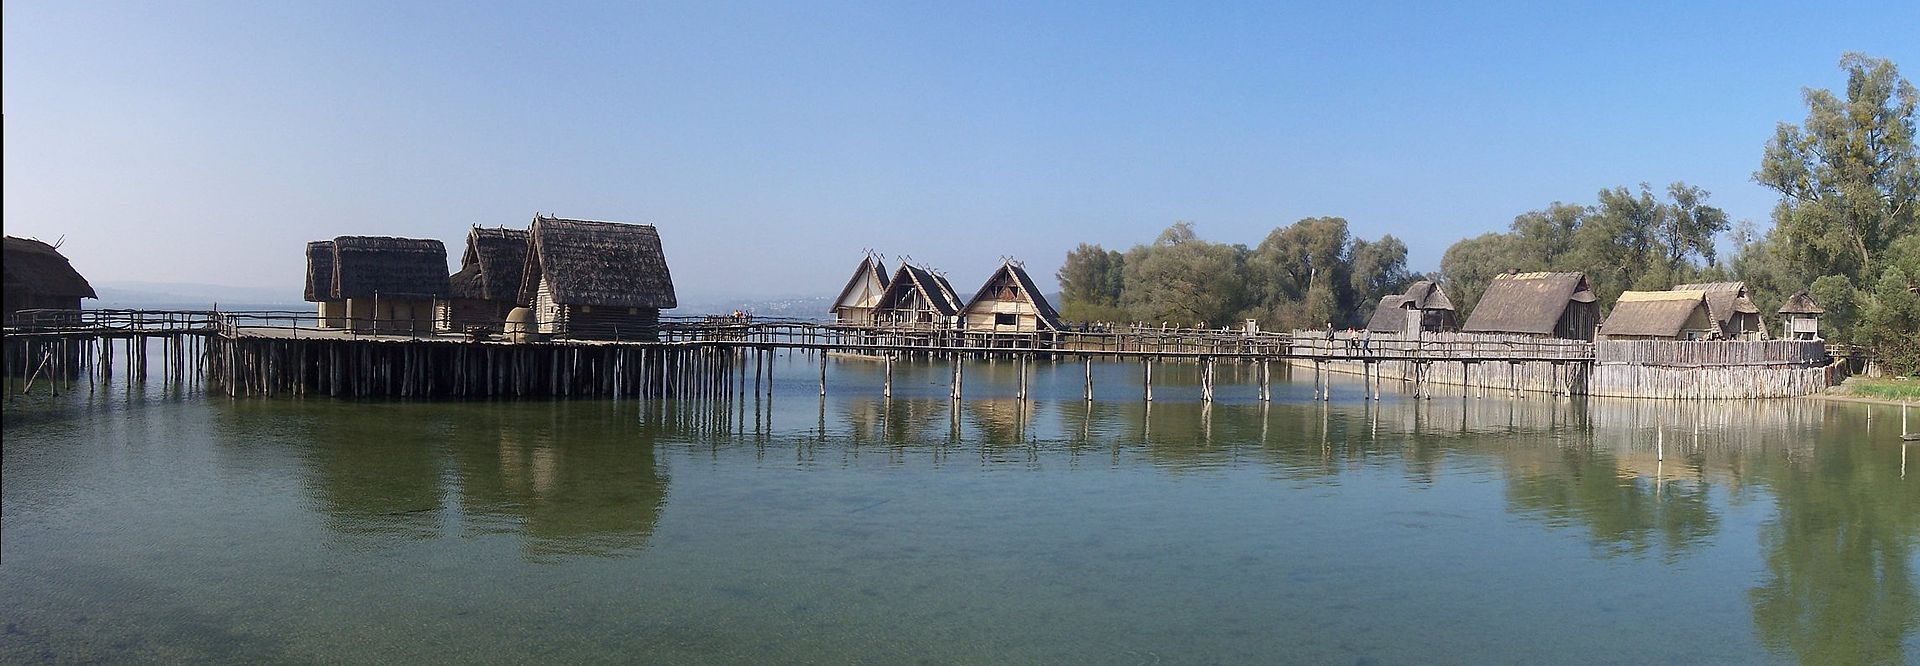 stilt houses designs